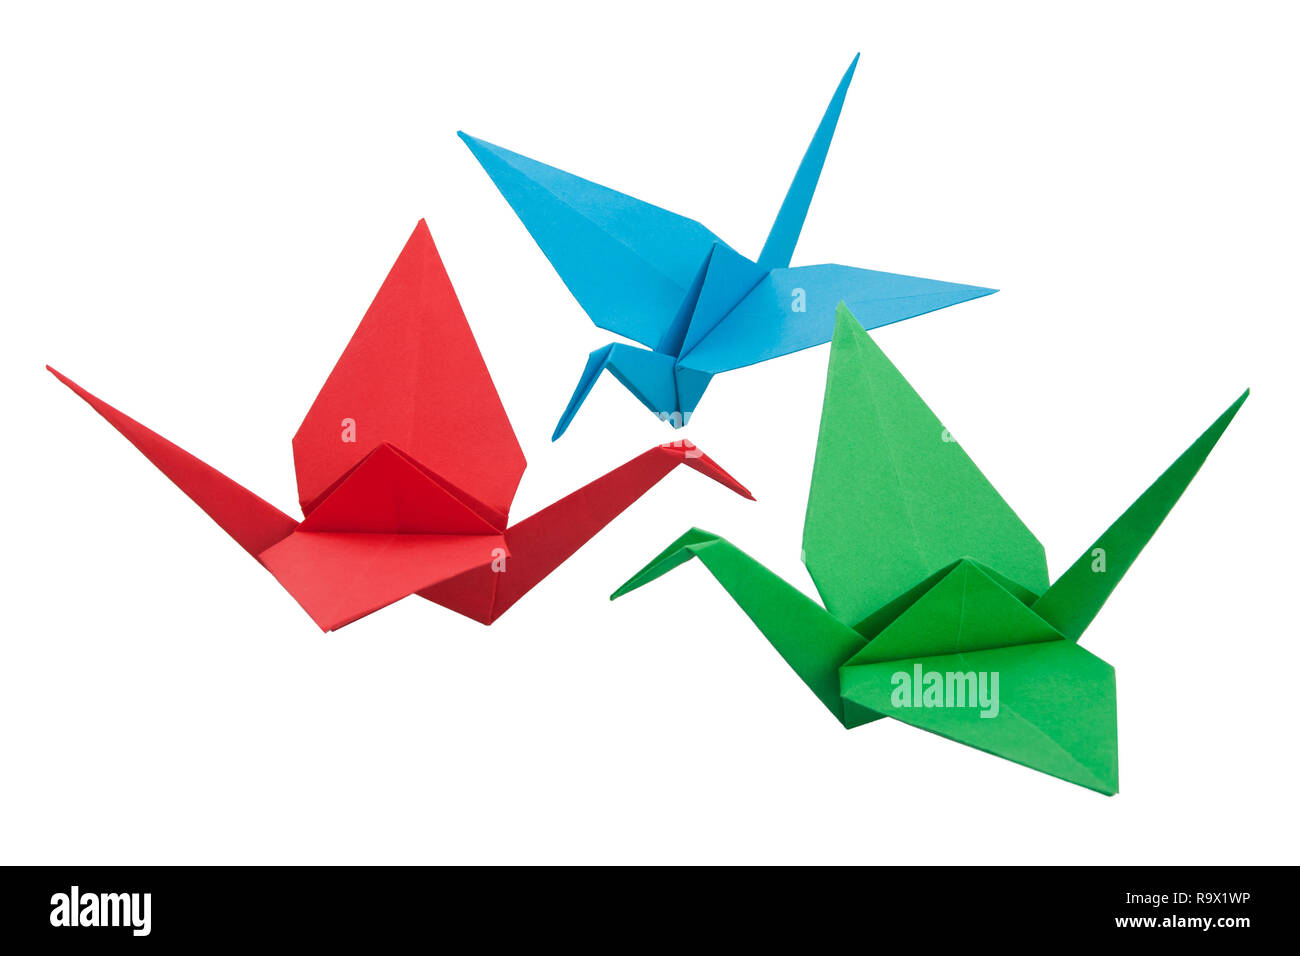 rainbow origami crane mobile. One of the many I shall make after ...   956x1300